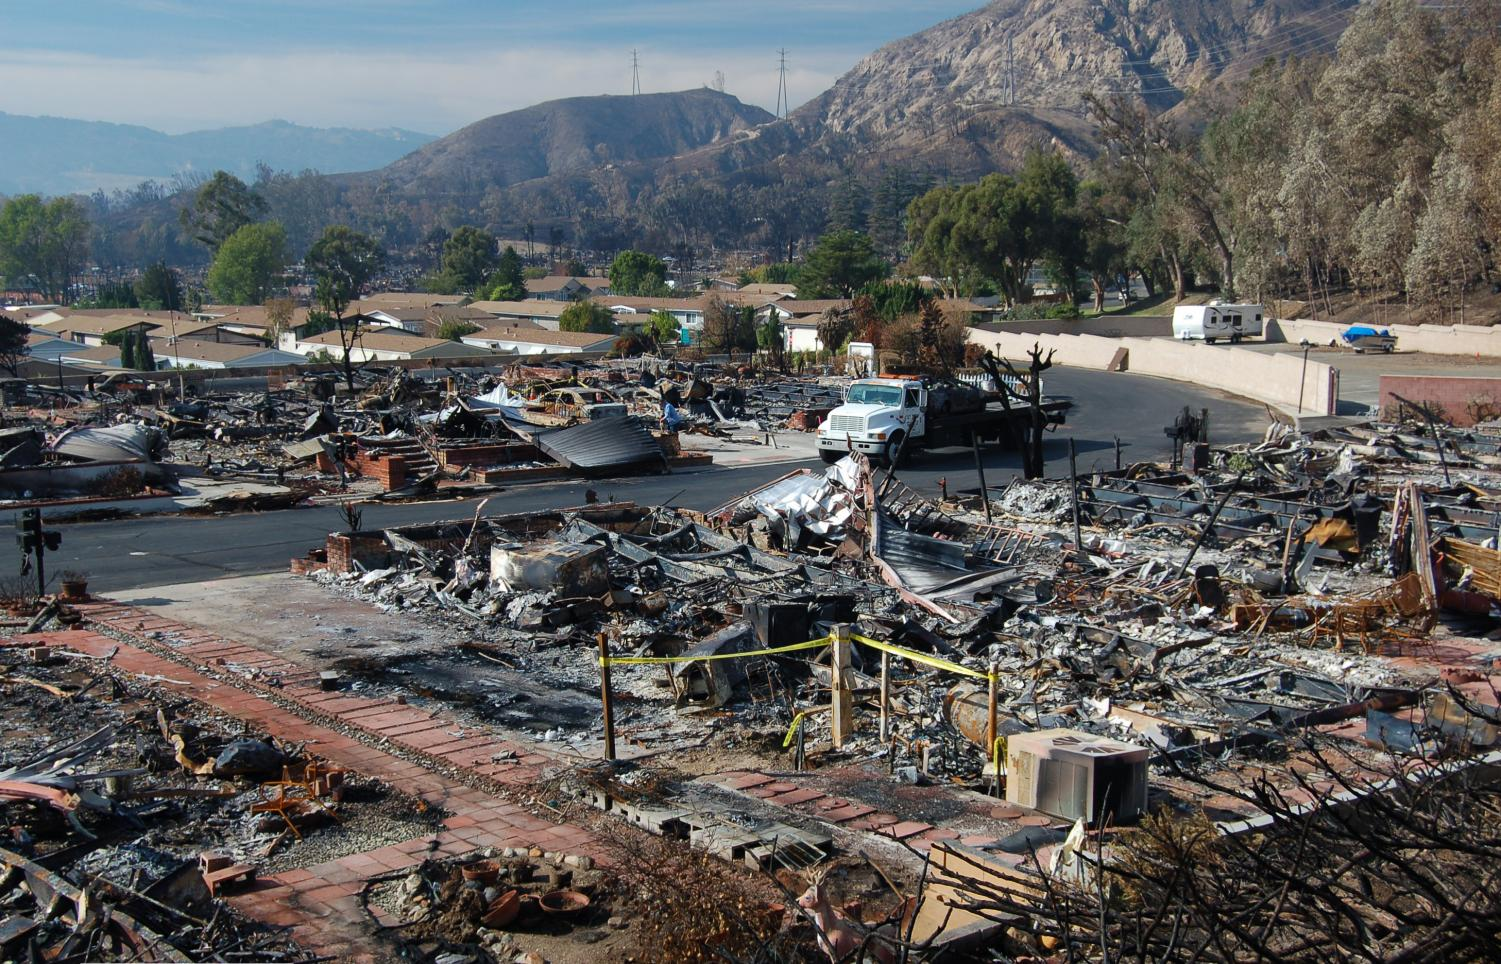 Wildfires in California laid waste to thousands of acres and destroyed businesses and homes.